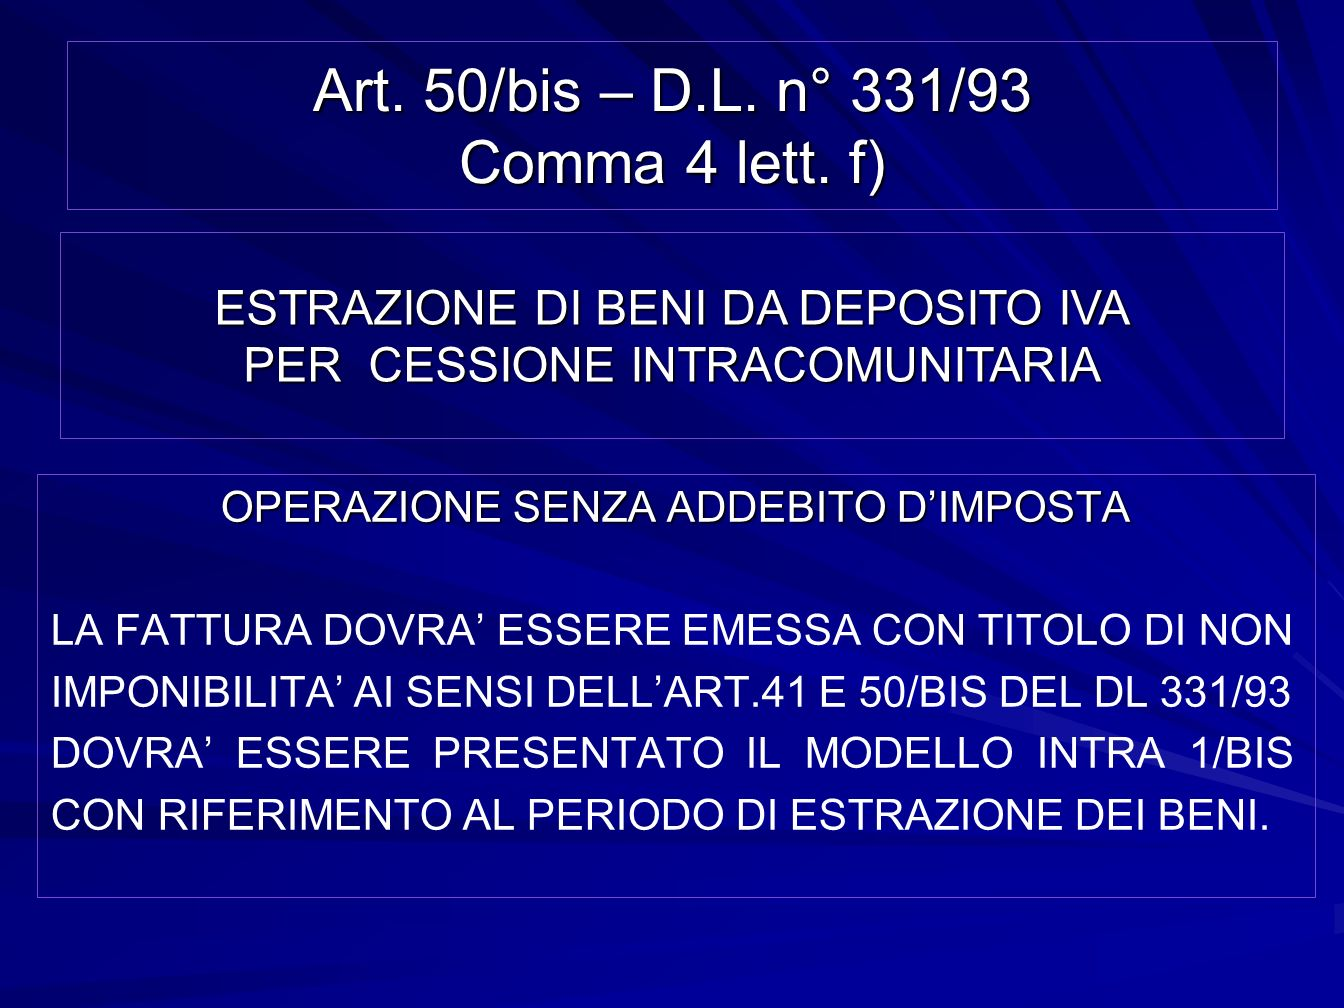 Art. 50/bis – D.L. n° 331/93 Comma 4 lett. f)